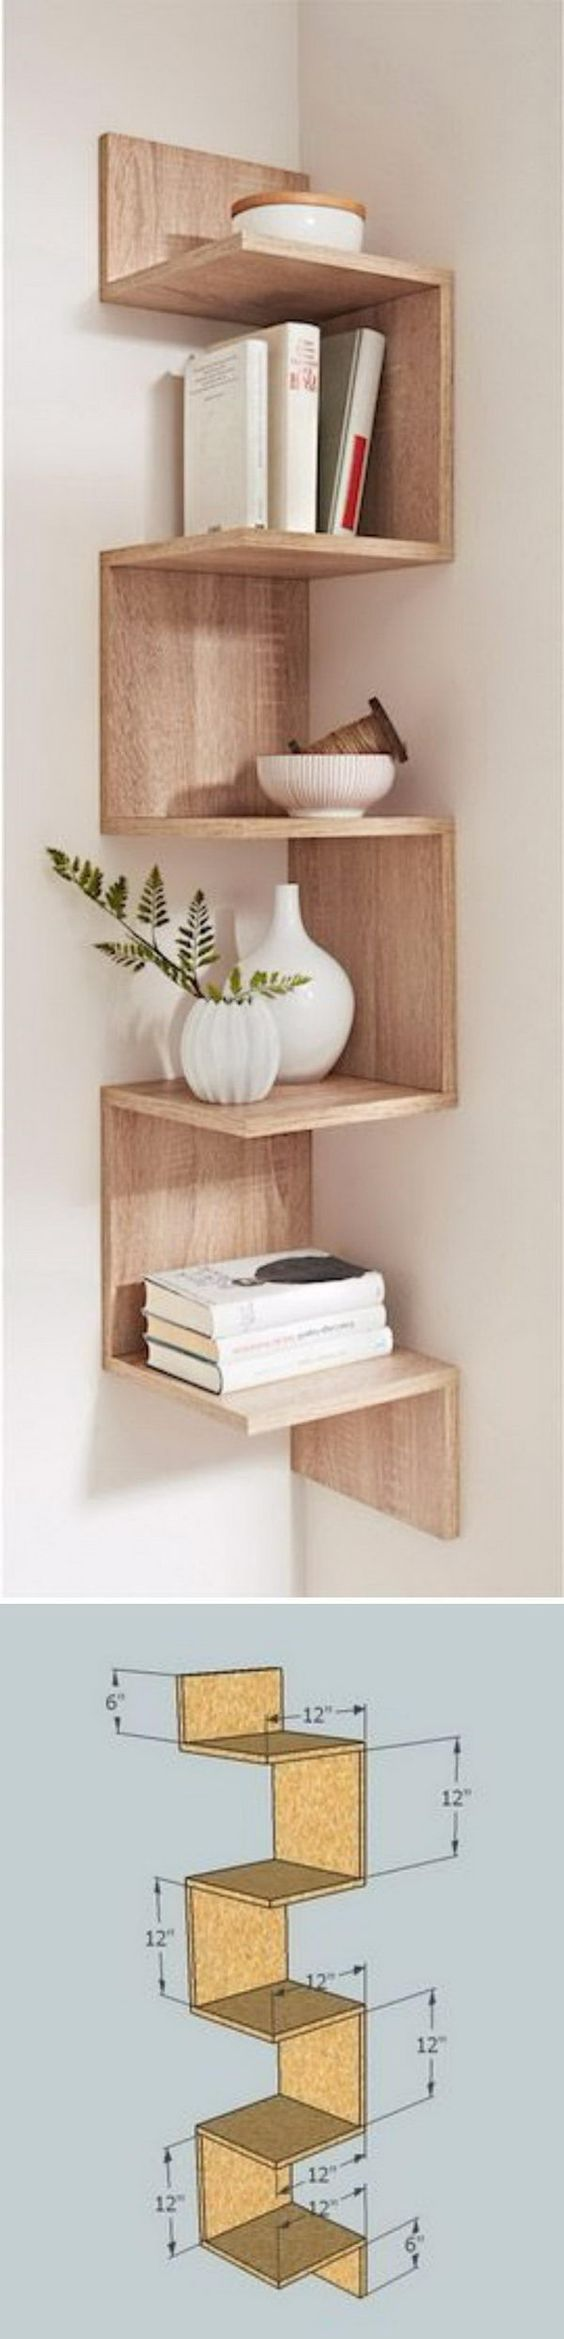 Best 25+ Shelving ideas ideas on Pinterest | Shelves, Open ...